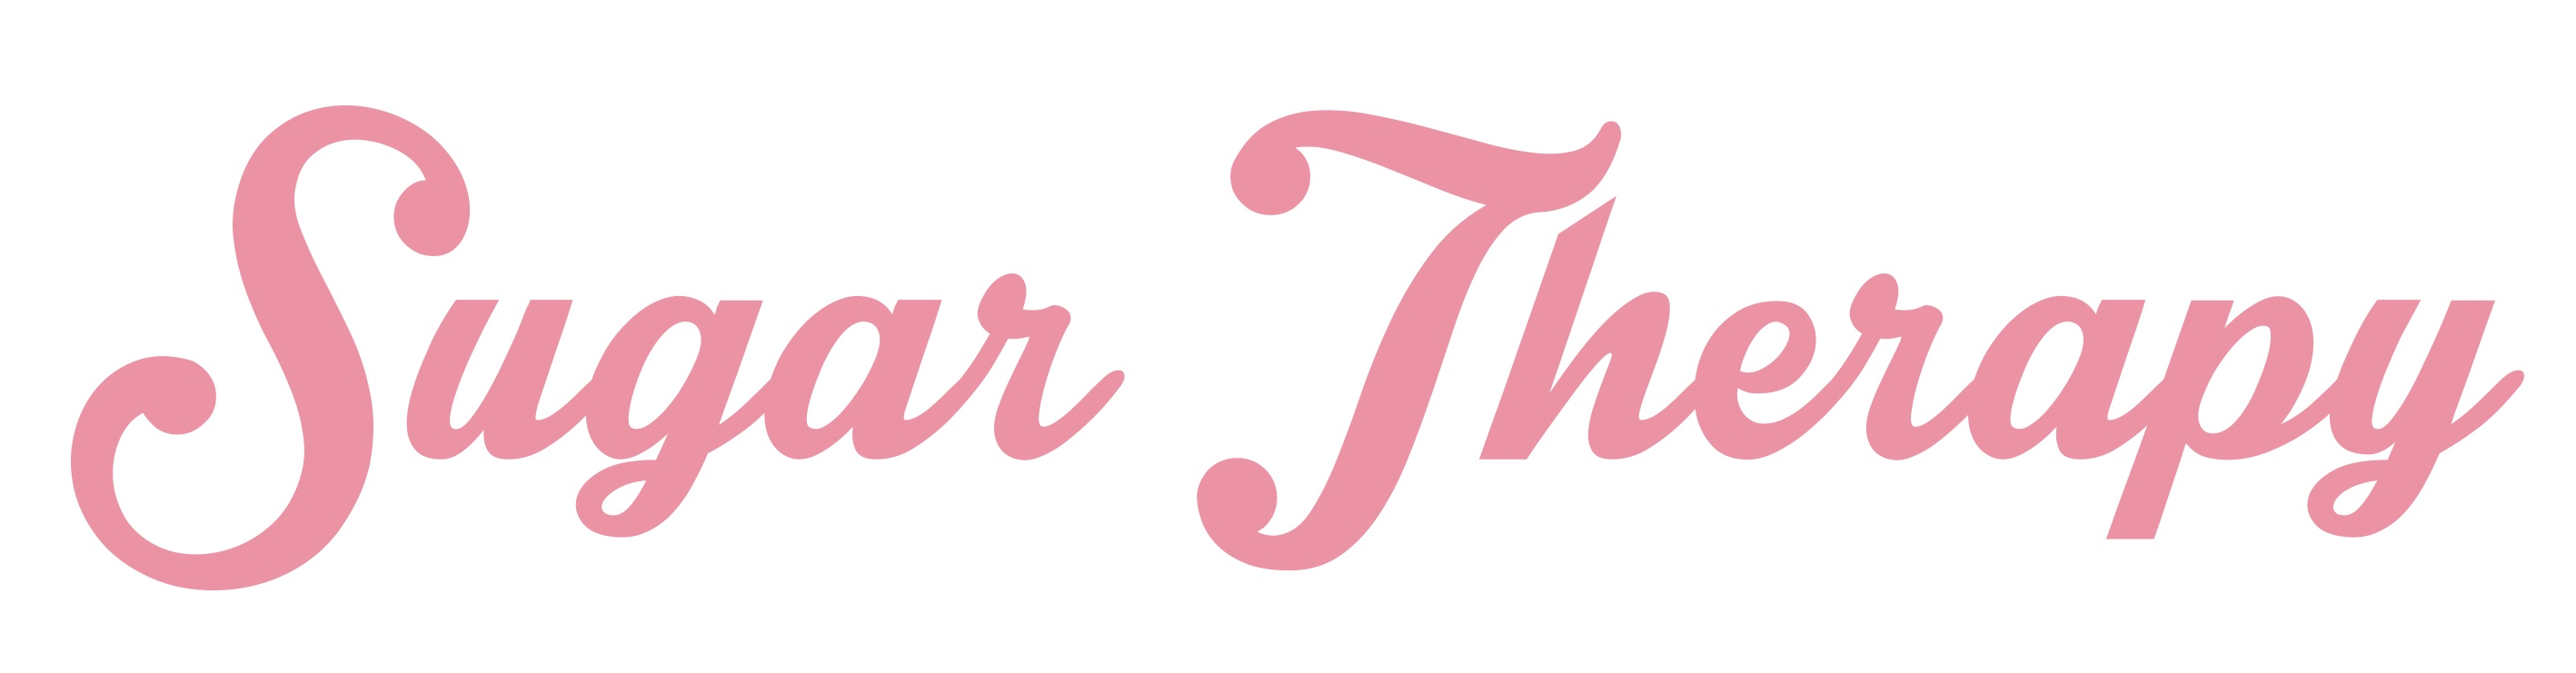 Sugar Therapy Logo